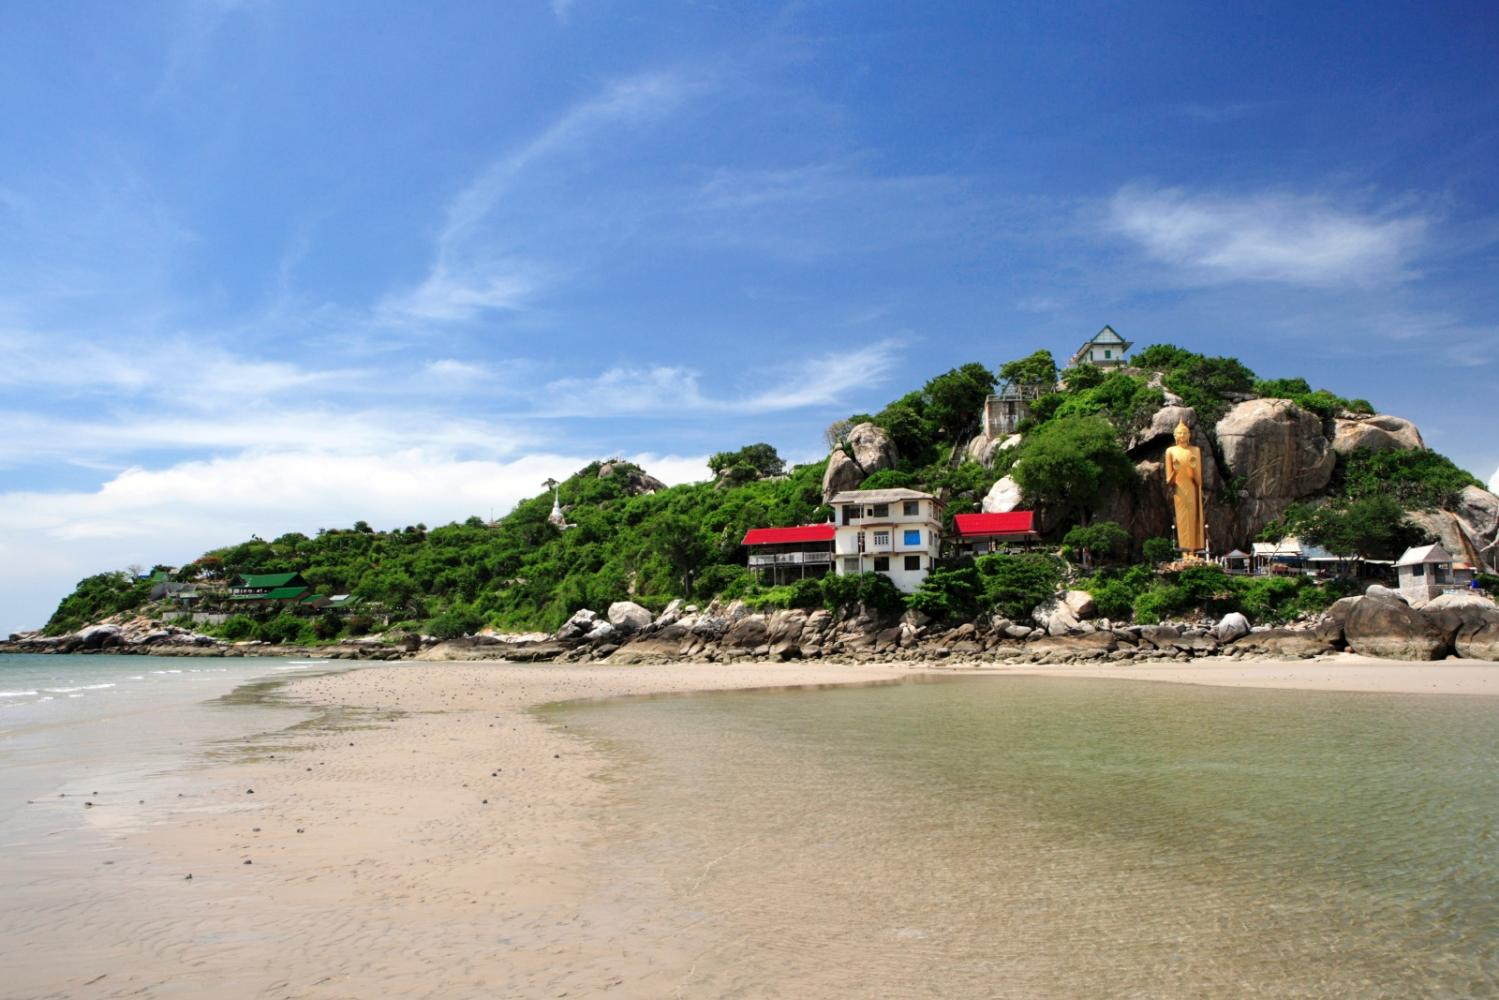 Hua Hin Oct 15 reopening on schedule